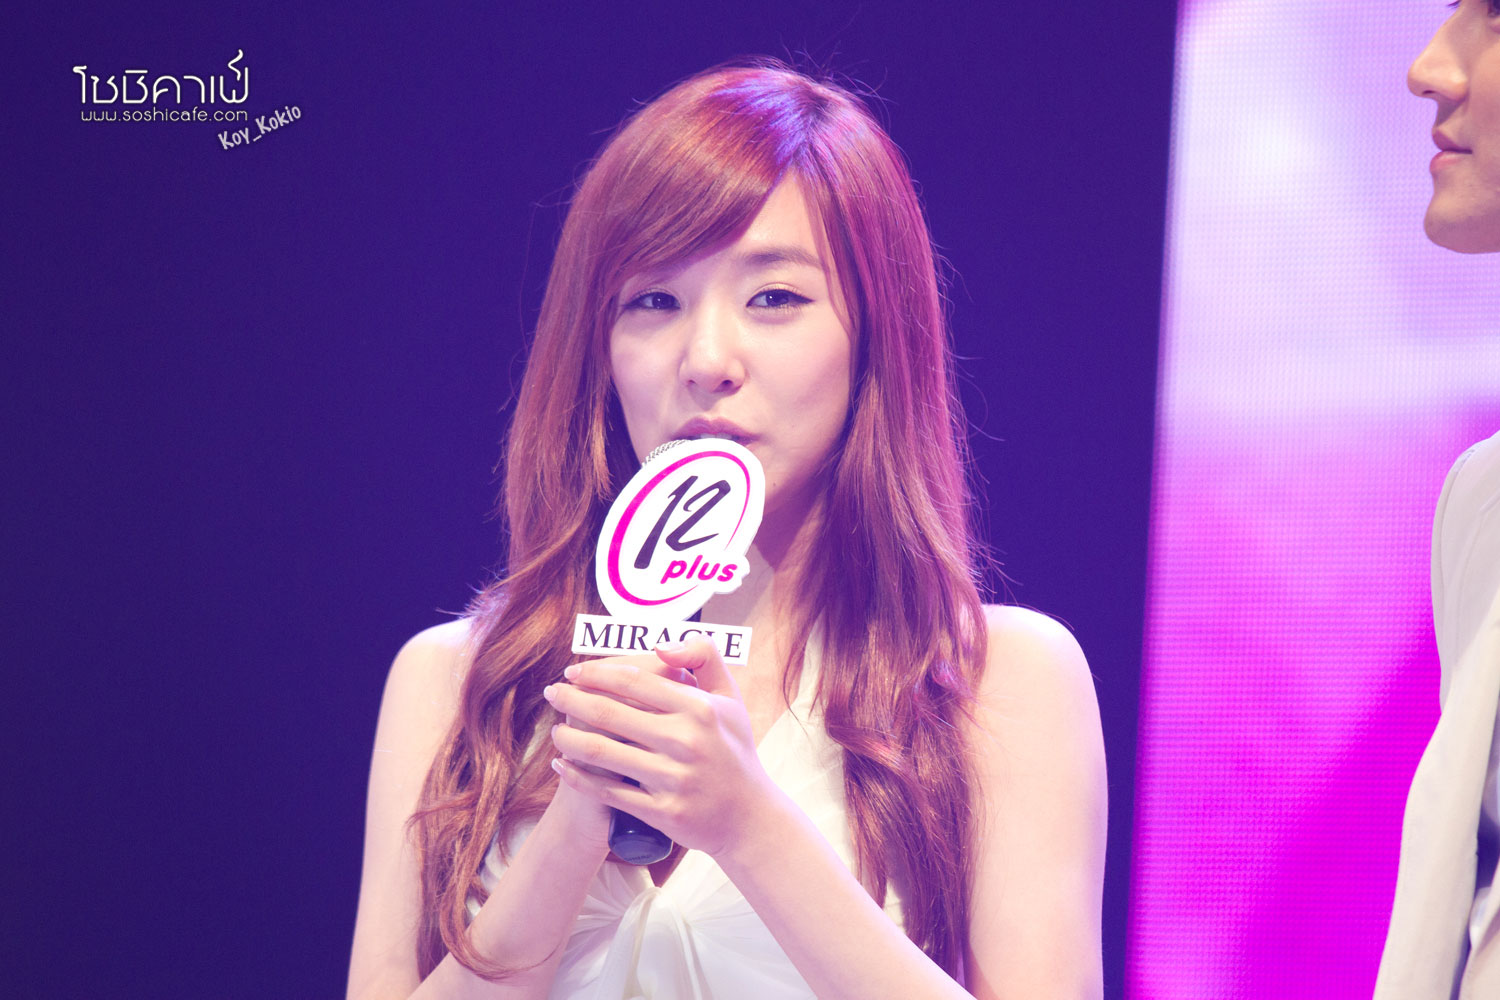 SNSD Tiffany 12plus Miracle Day Bangkok